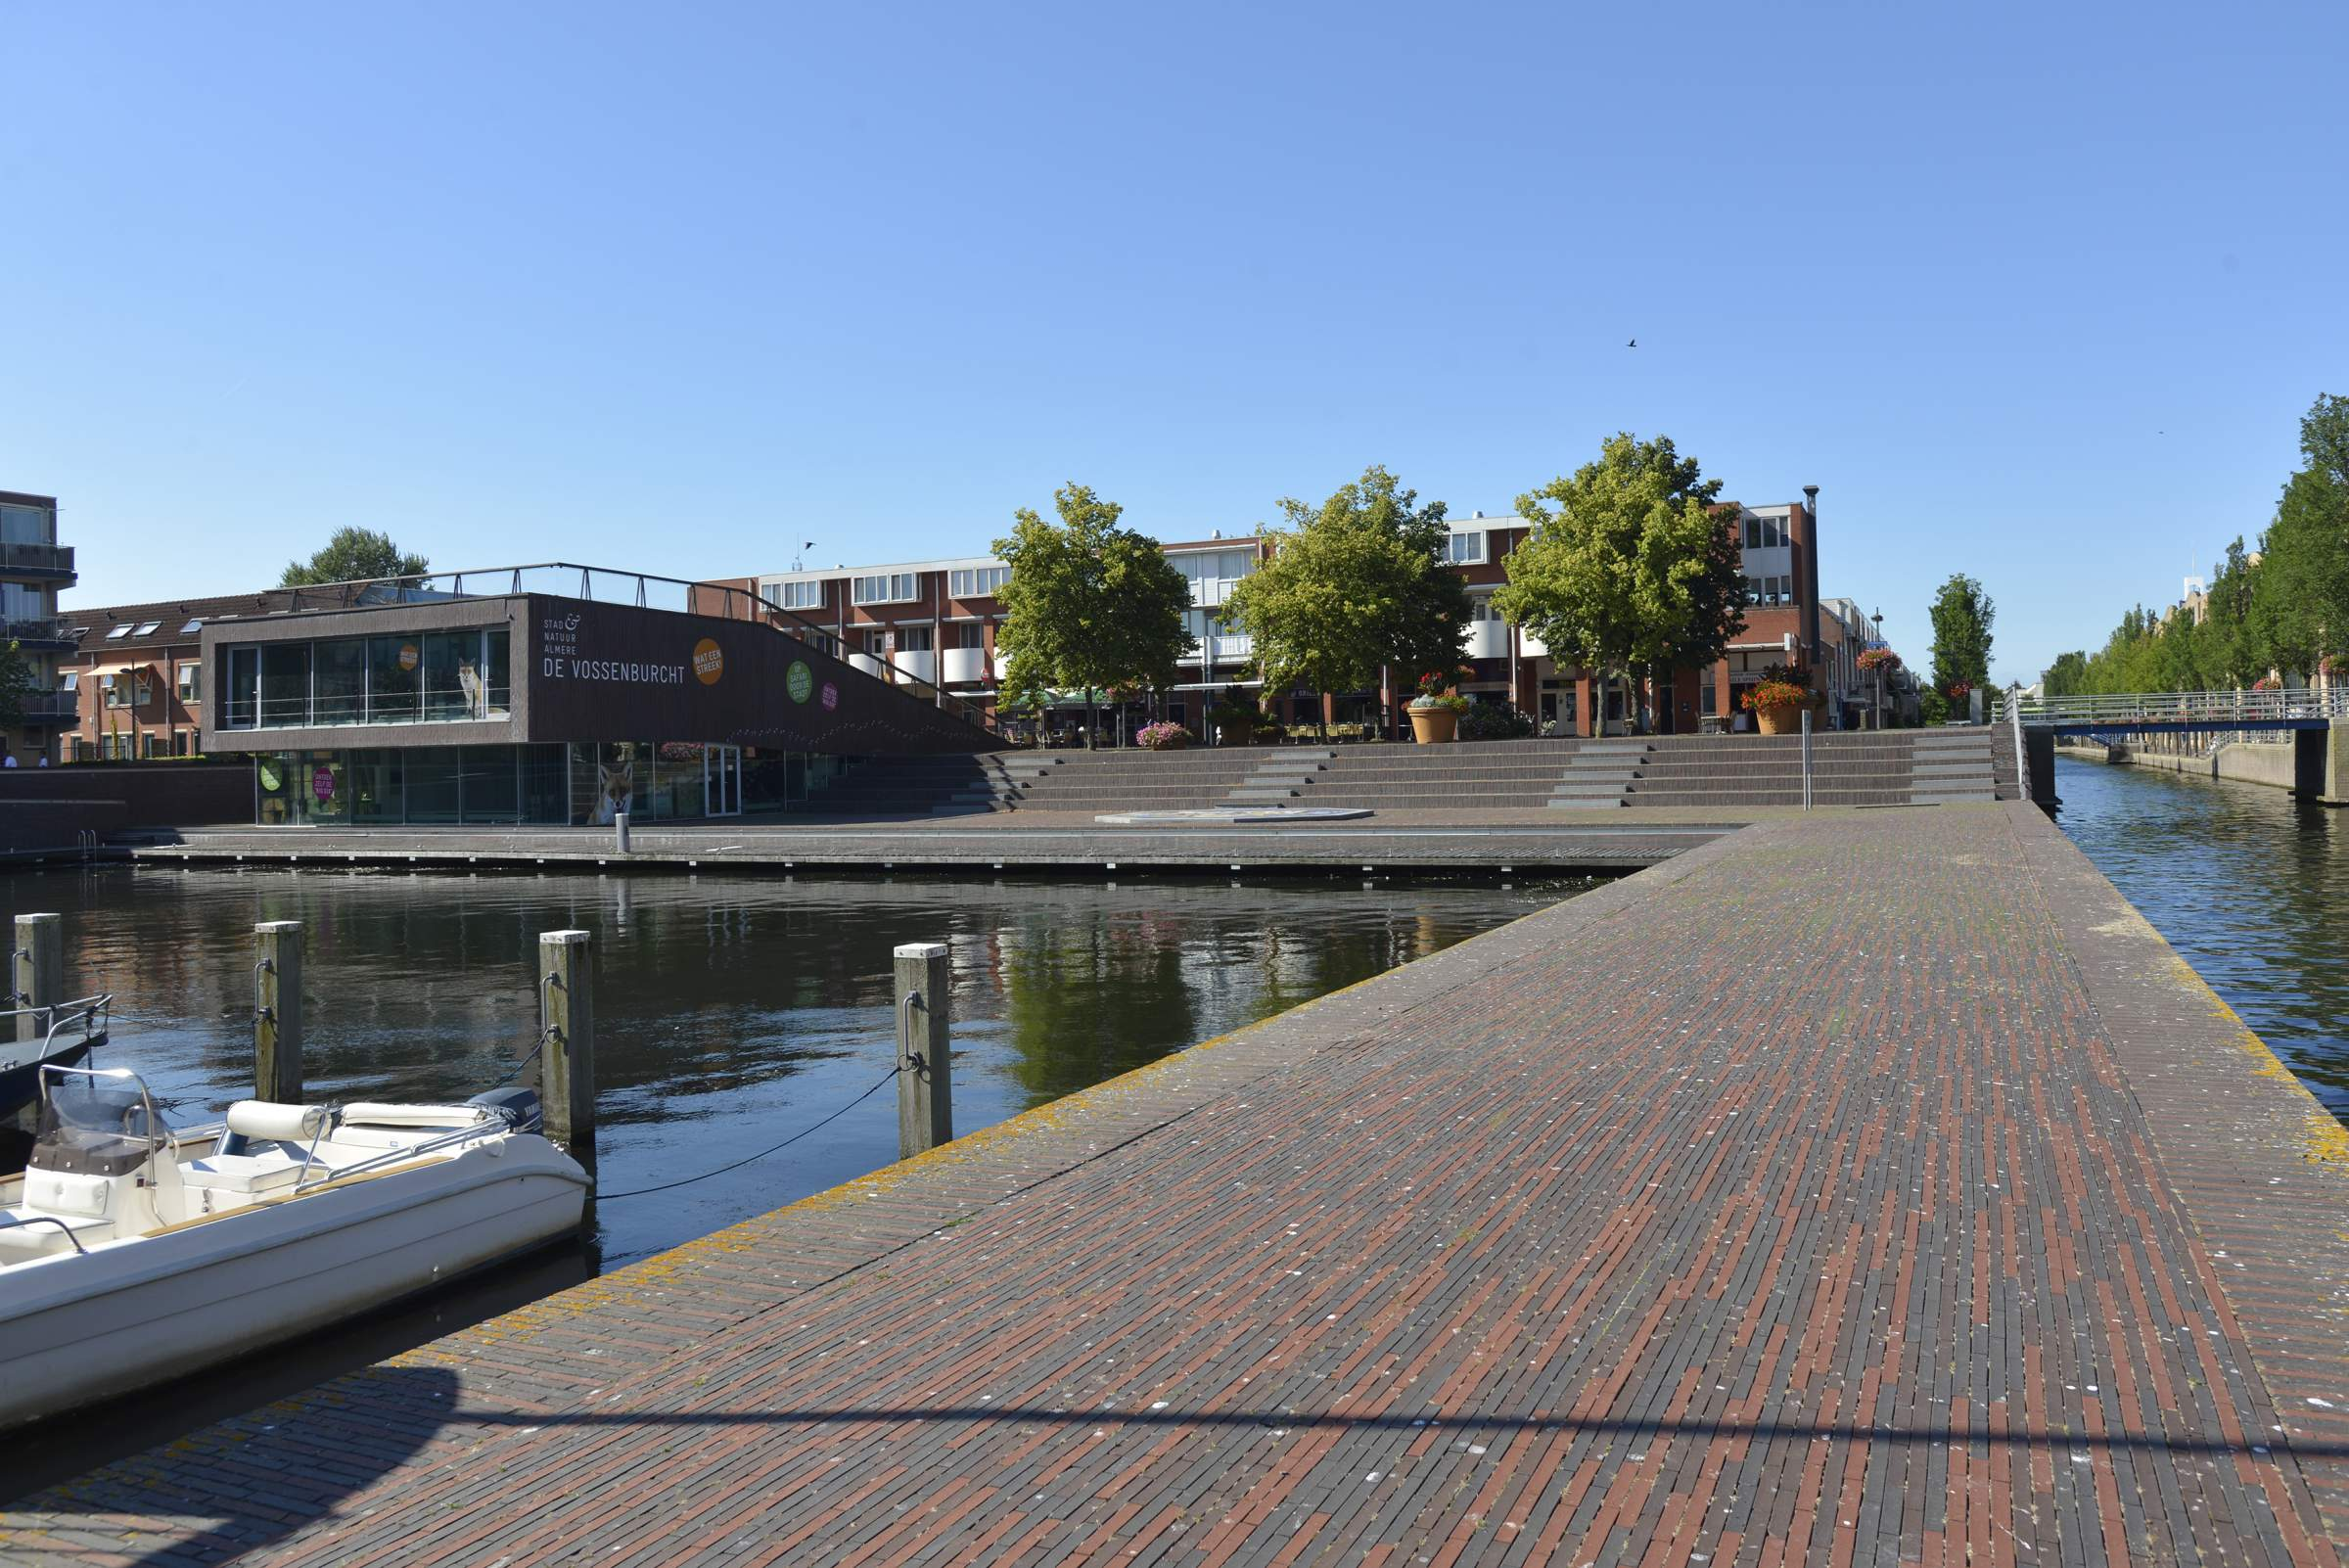 LANDLAB Weerwaterplein jetty in summer